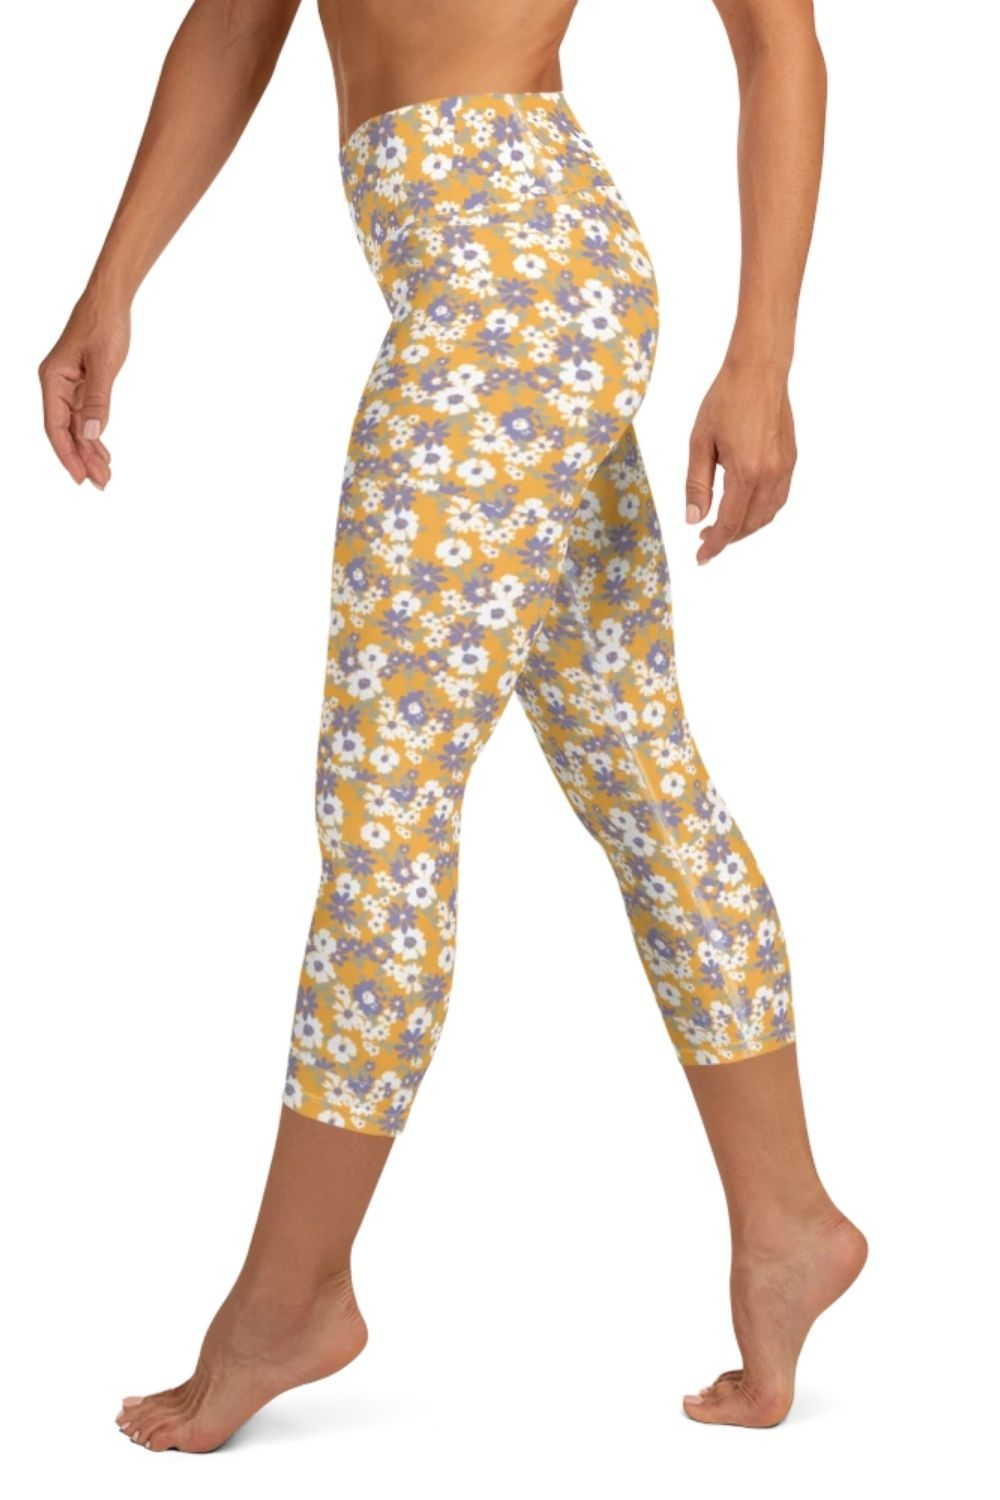 Woodstock 3/4 Leggings